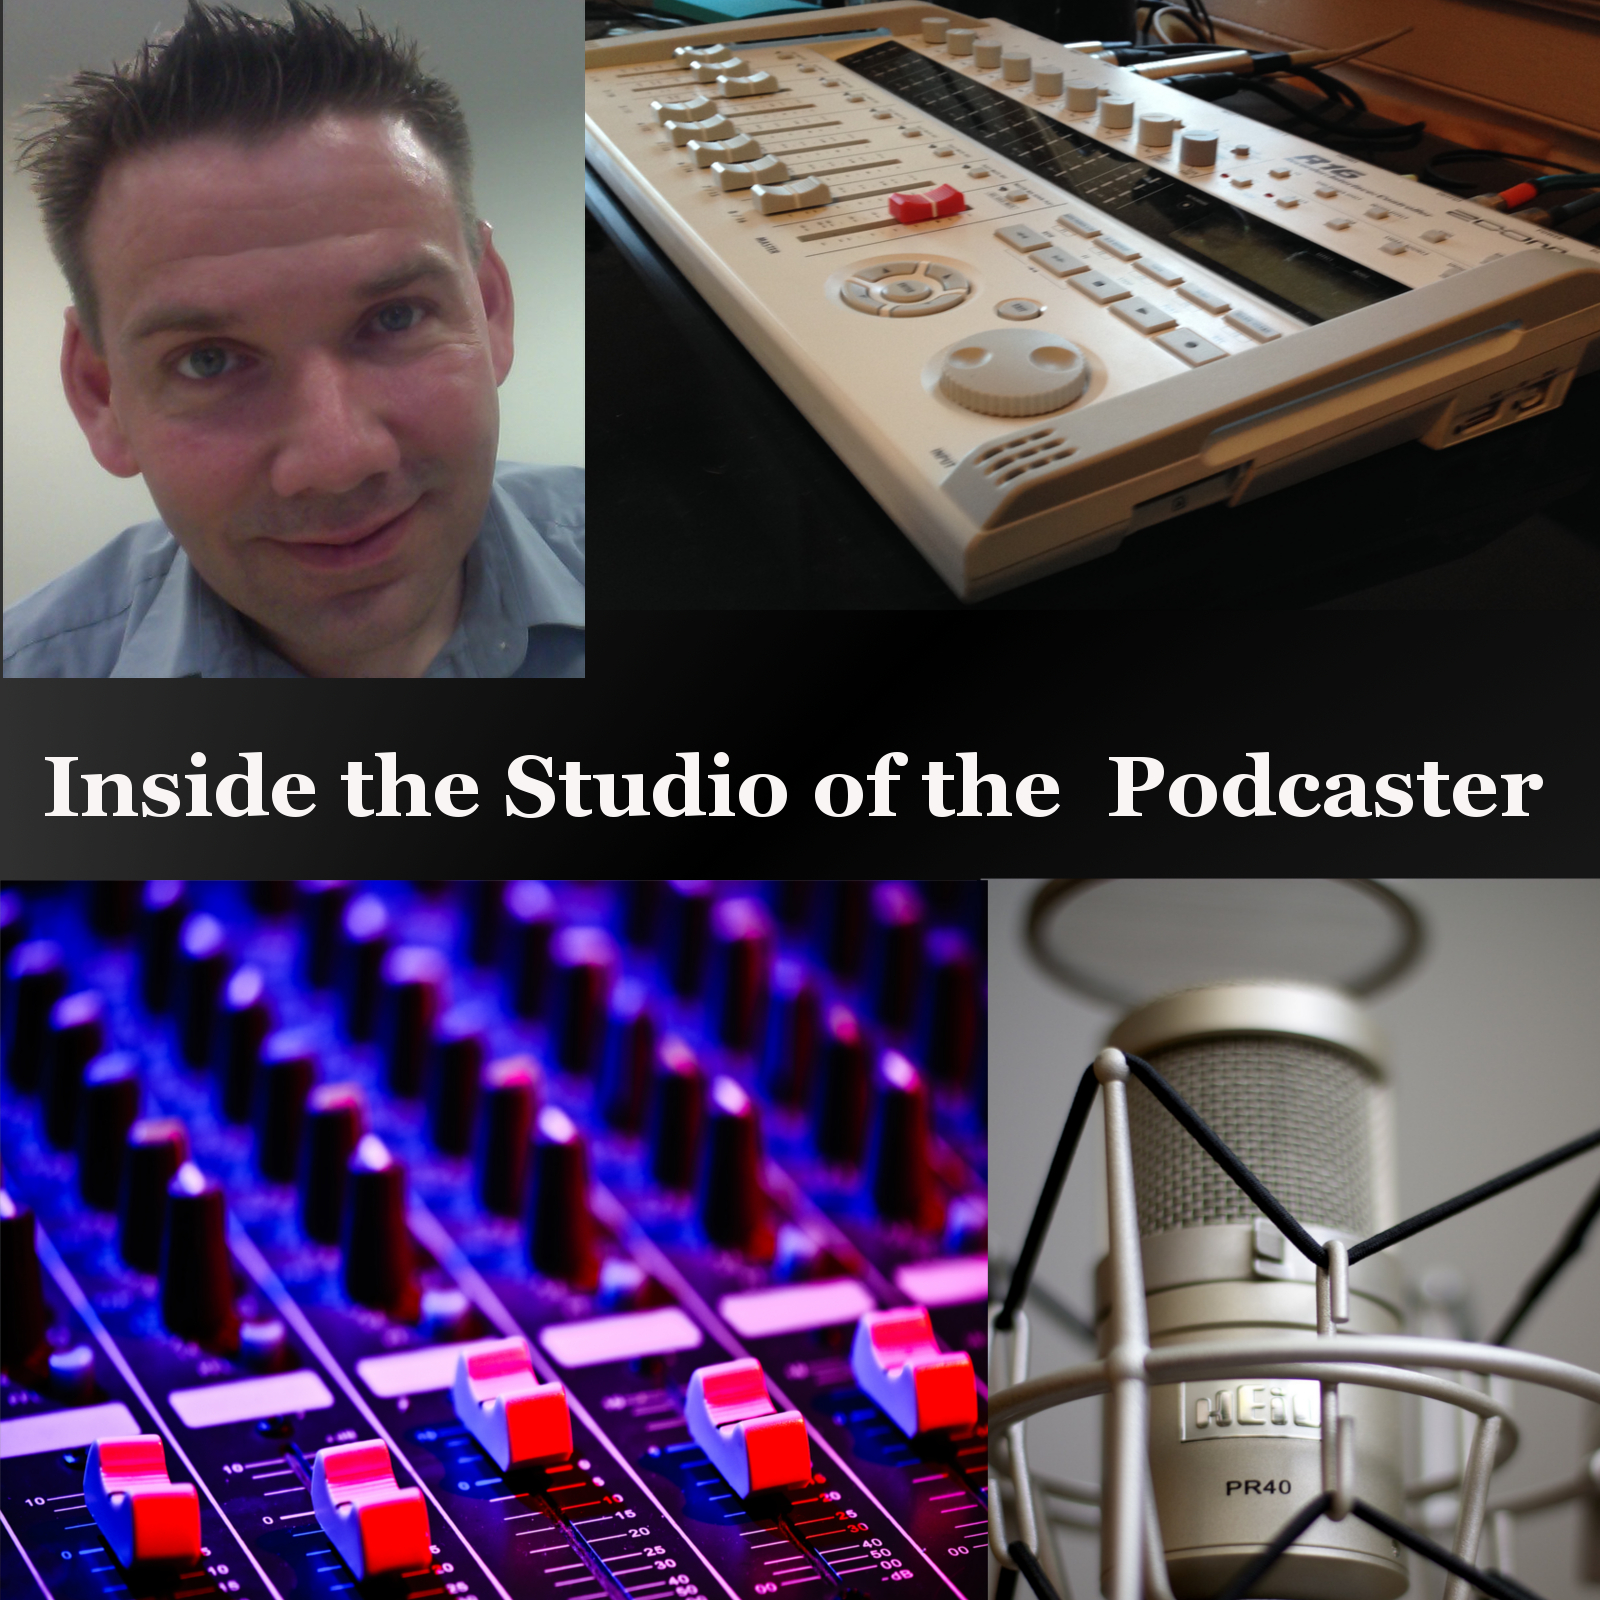 002 - Inside the Studio of the Podcast - Doug Payton from the Consider This! Podcast Talks Audio Editing with Gold Wave - Let us know your thoughts by calling 18885084343